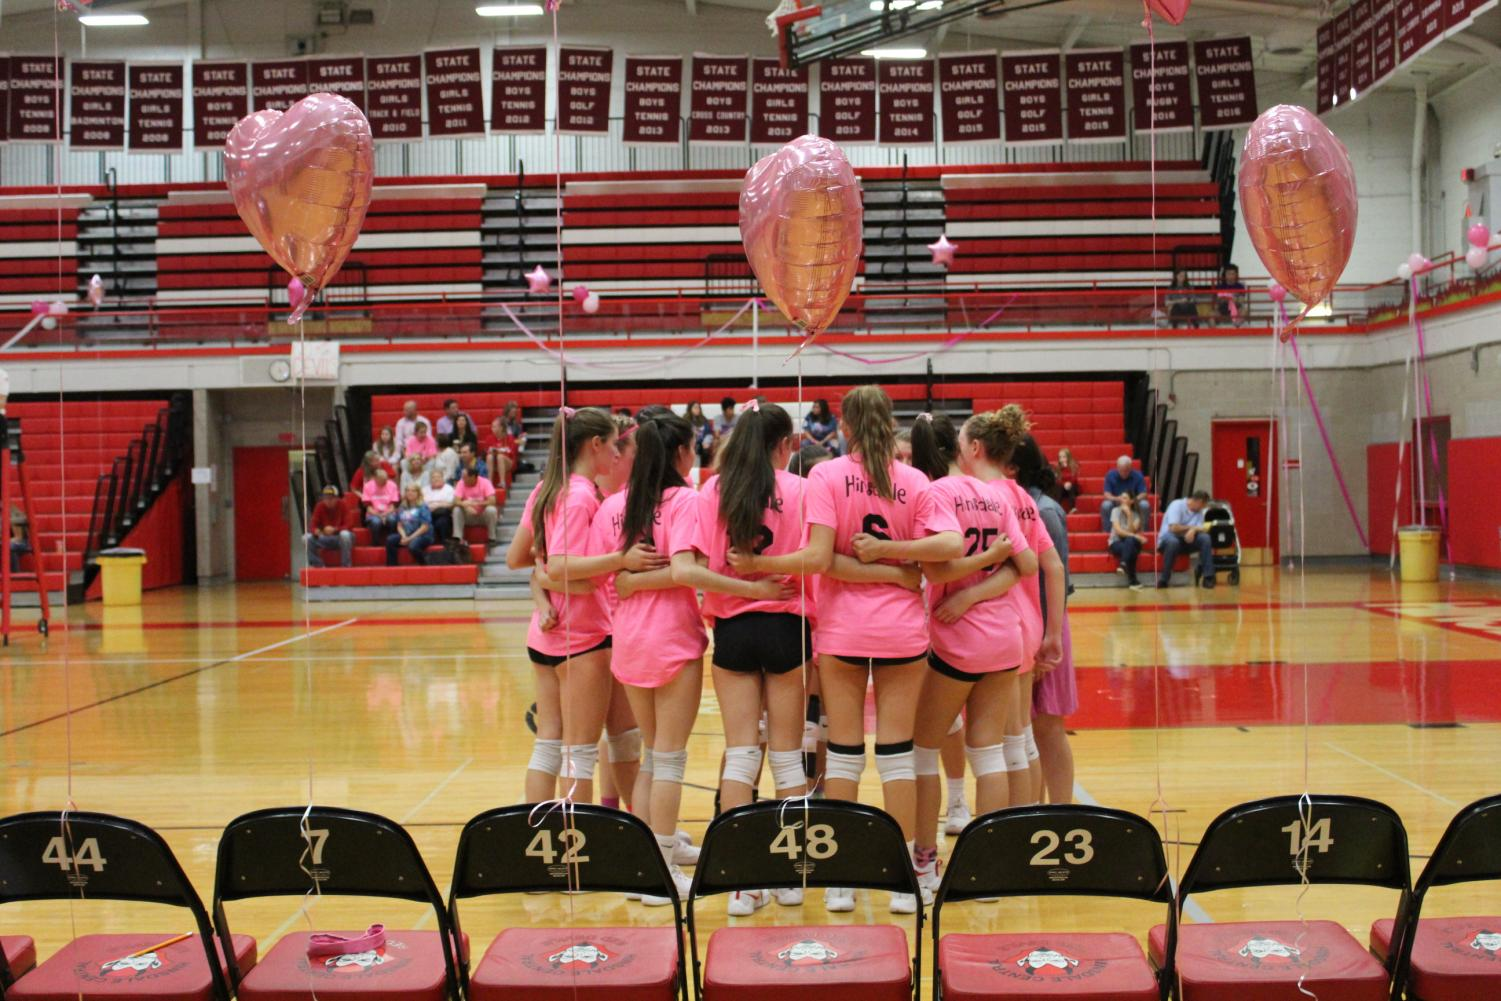 The sophomore team huddles in between sets, in front of balloons setup that decorated the event.